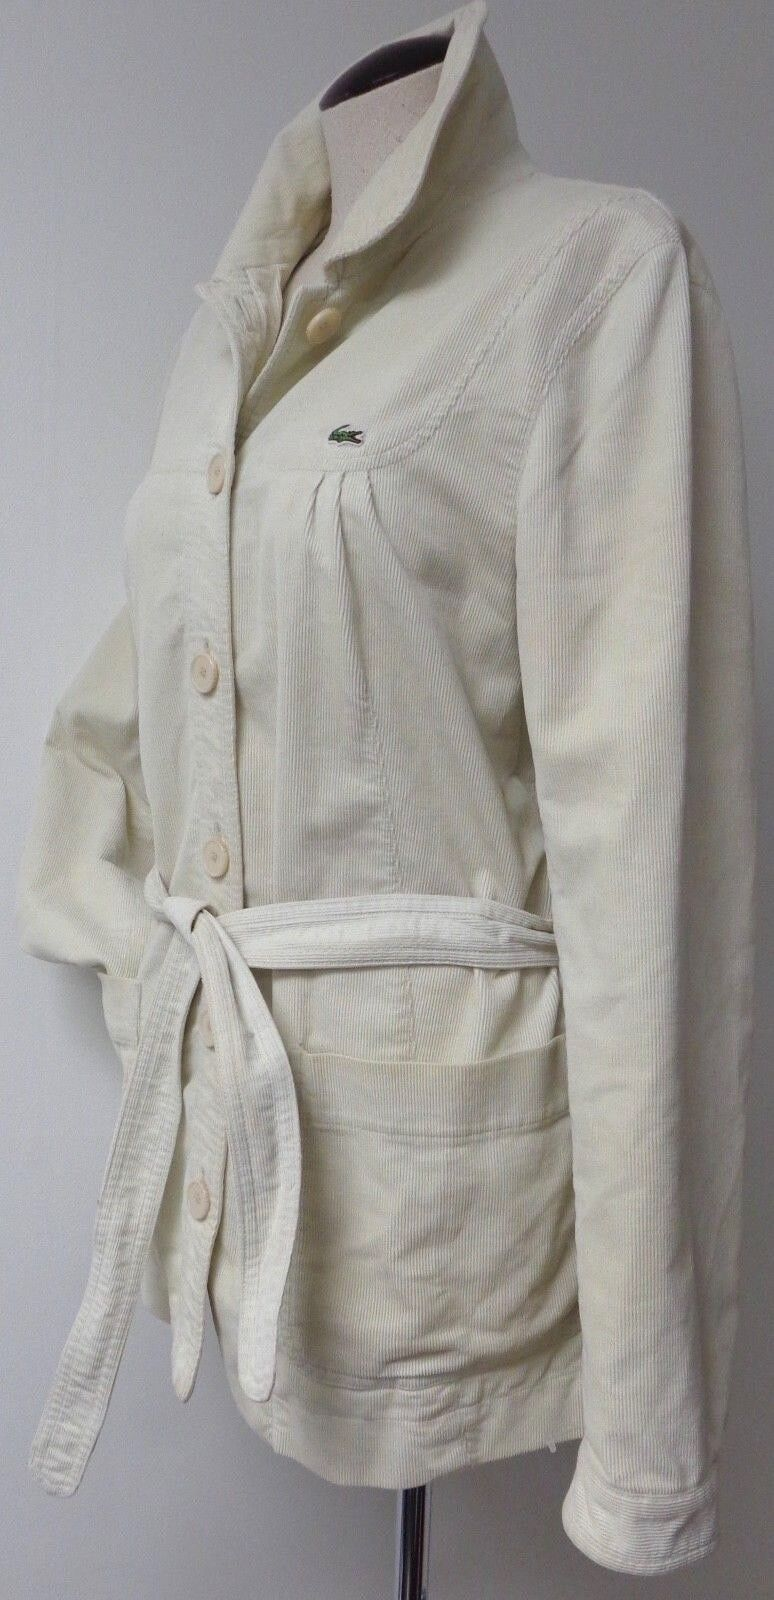 LACOSTE VINTAGE WOMENS BUTTON FRONT BELTED CORDUROY CASUAL COAT HIP LENGTH 44 12